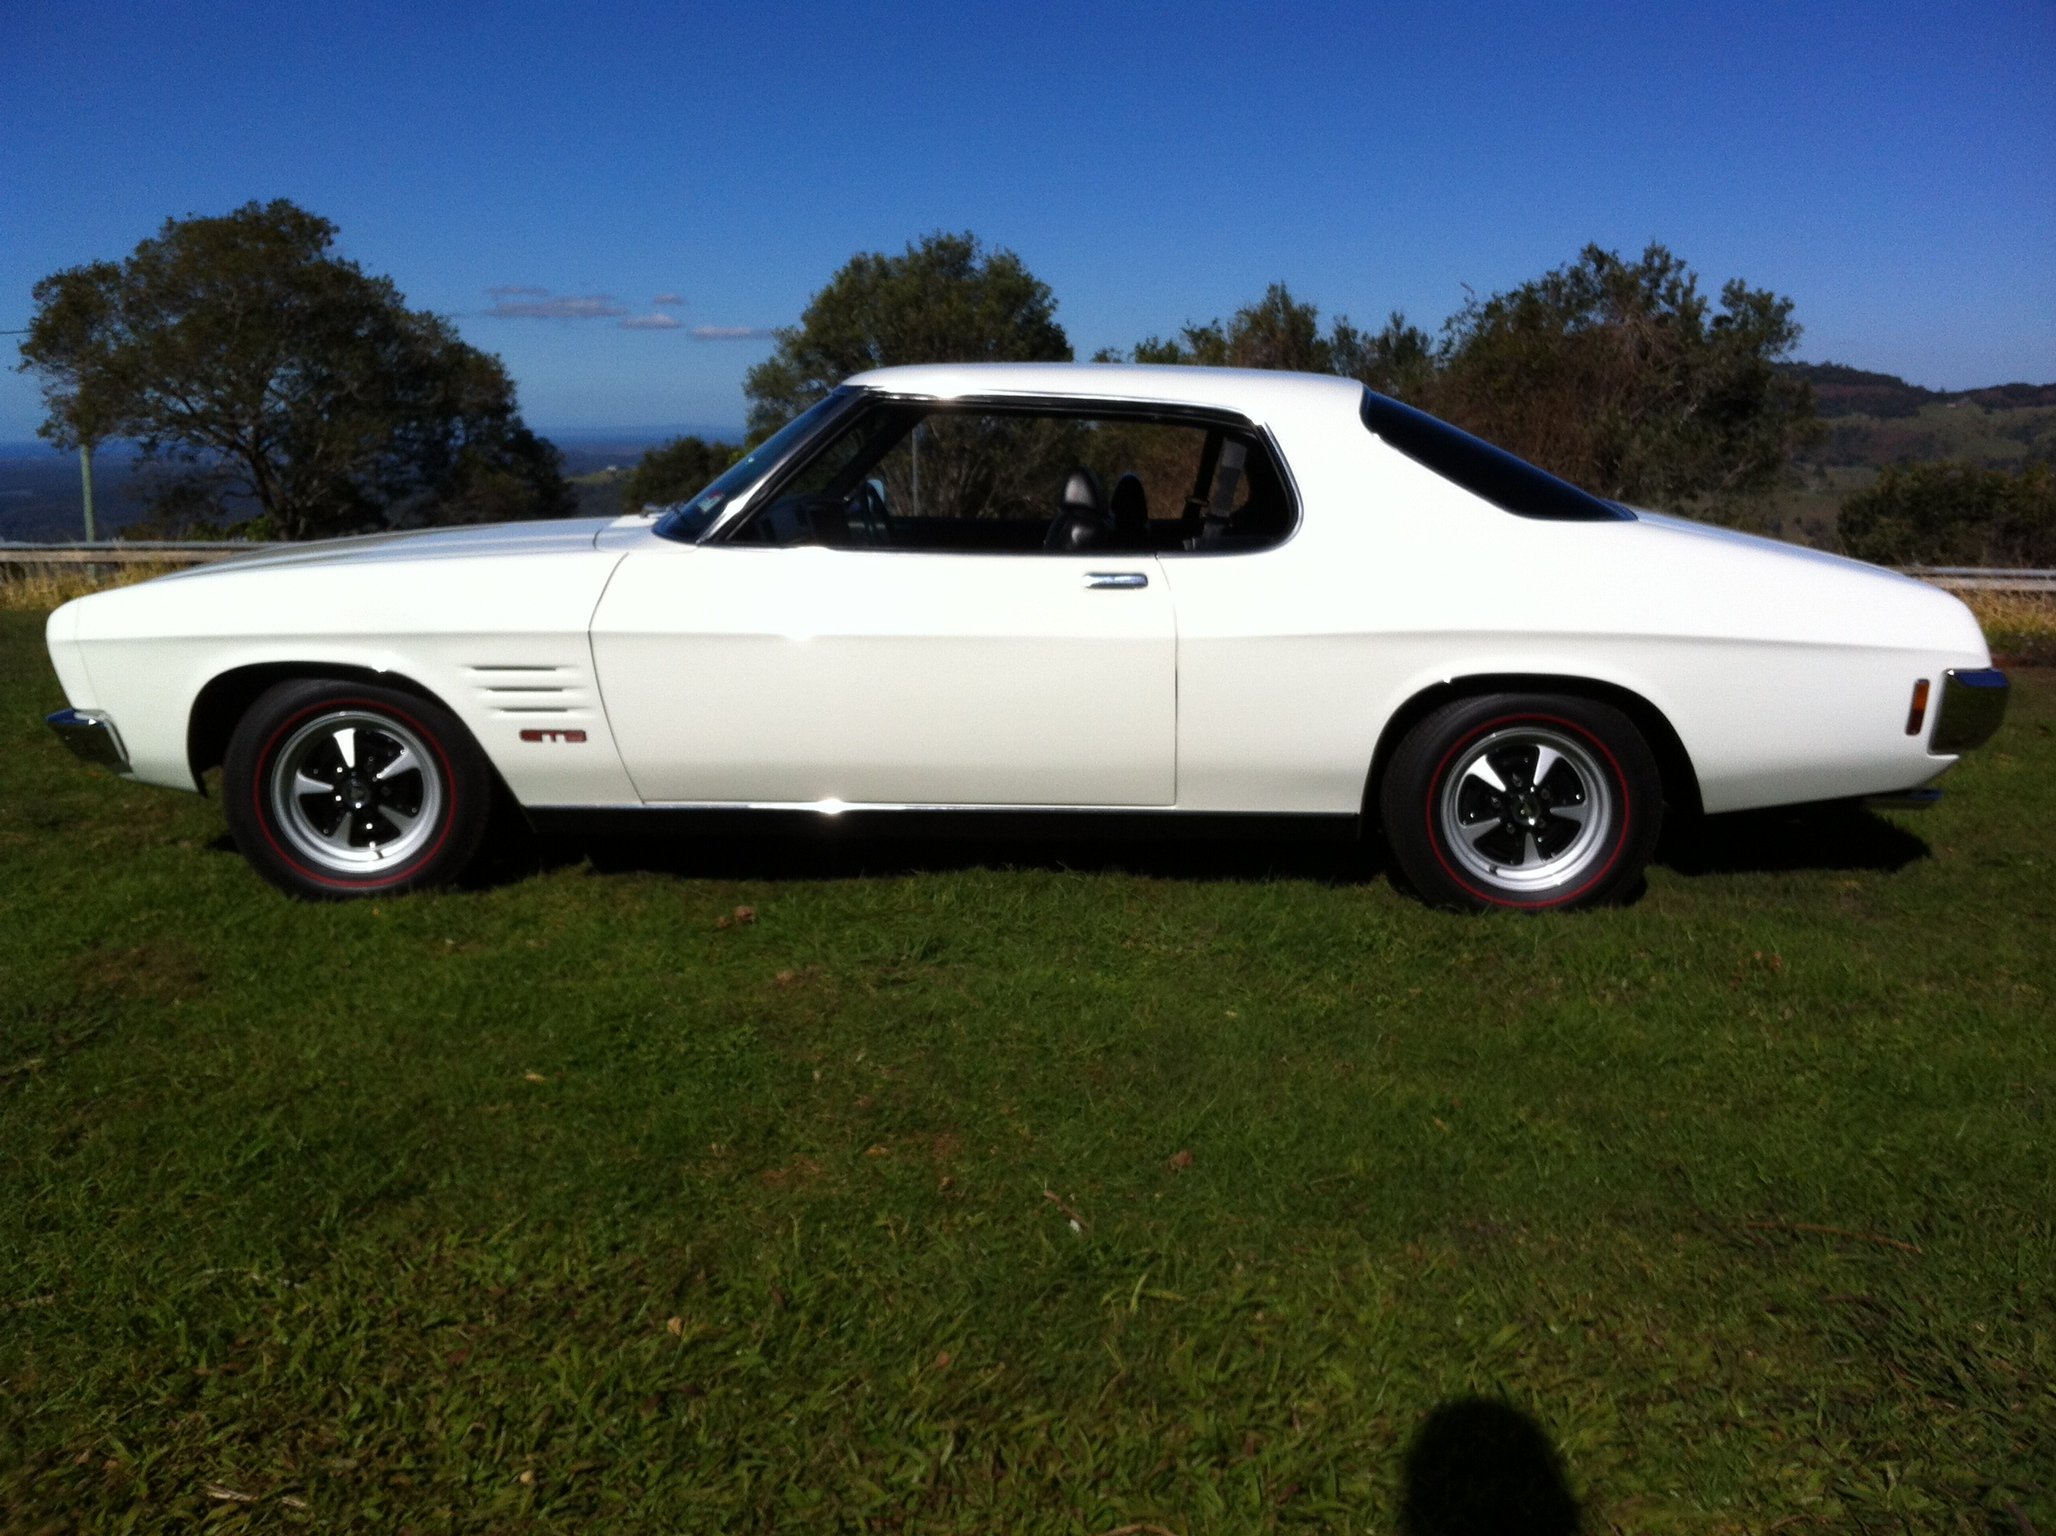 Classic Hq Gts Monaro 1972 Original Star Cars Agency